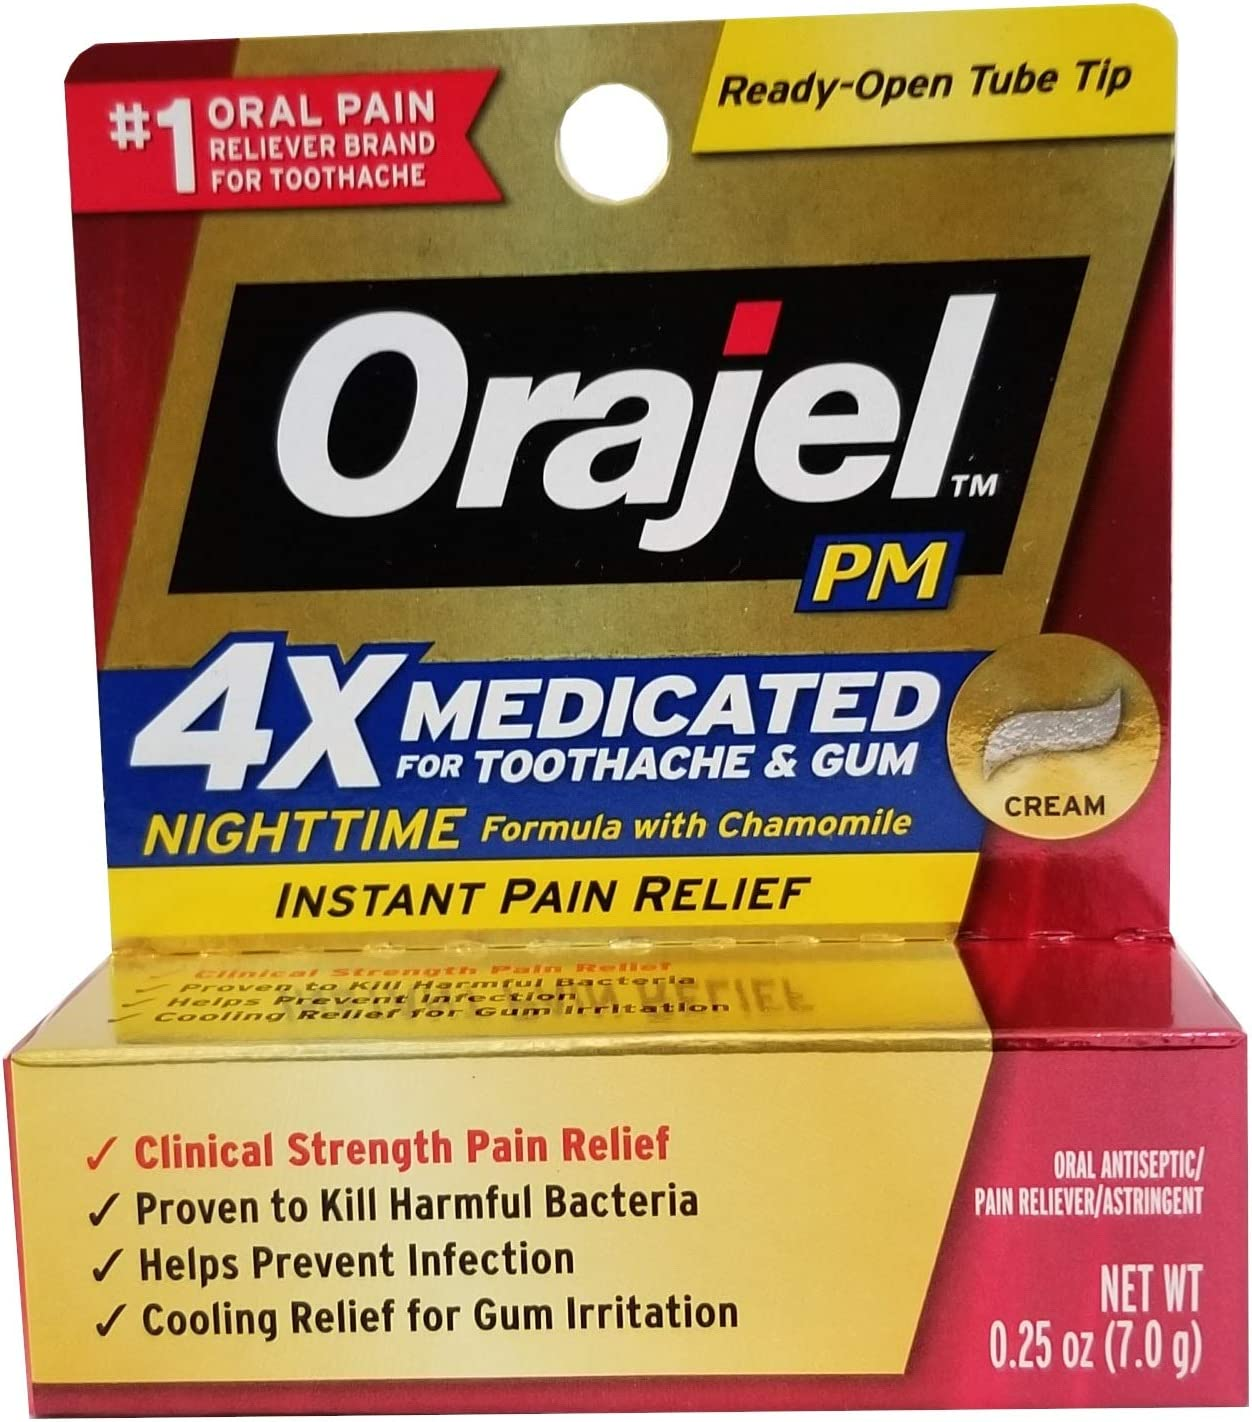 Orajel Maximum Strength Nighttime Toothache Pain Relief Cream - 0.25 Oz: Health & Personal Care